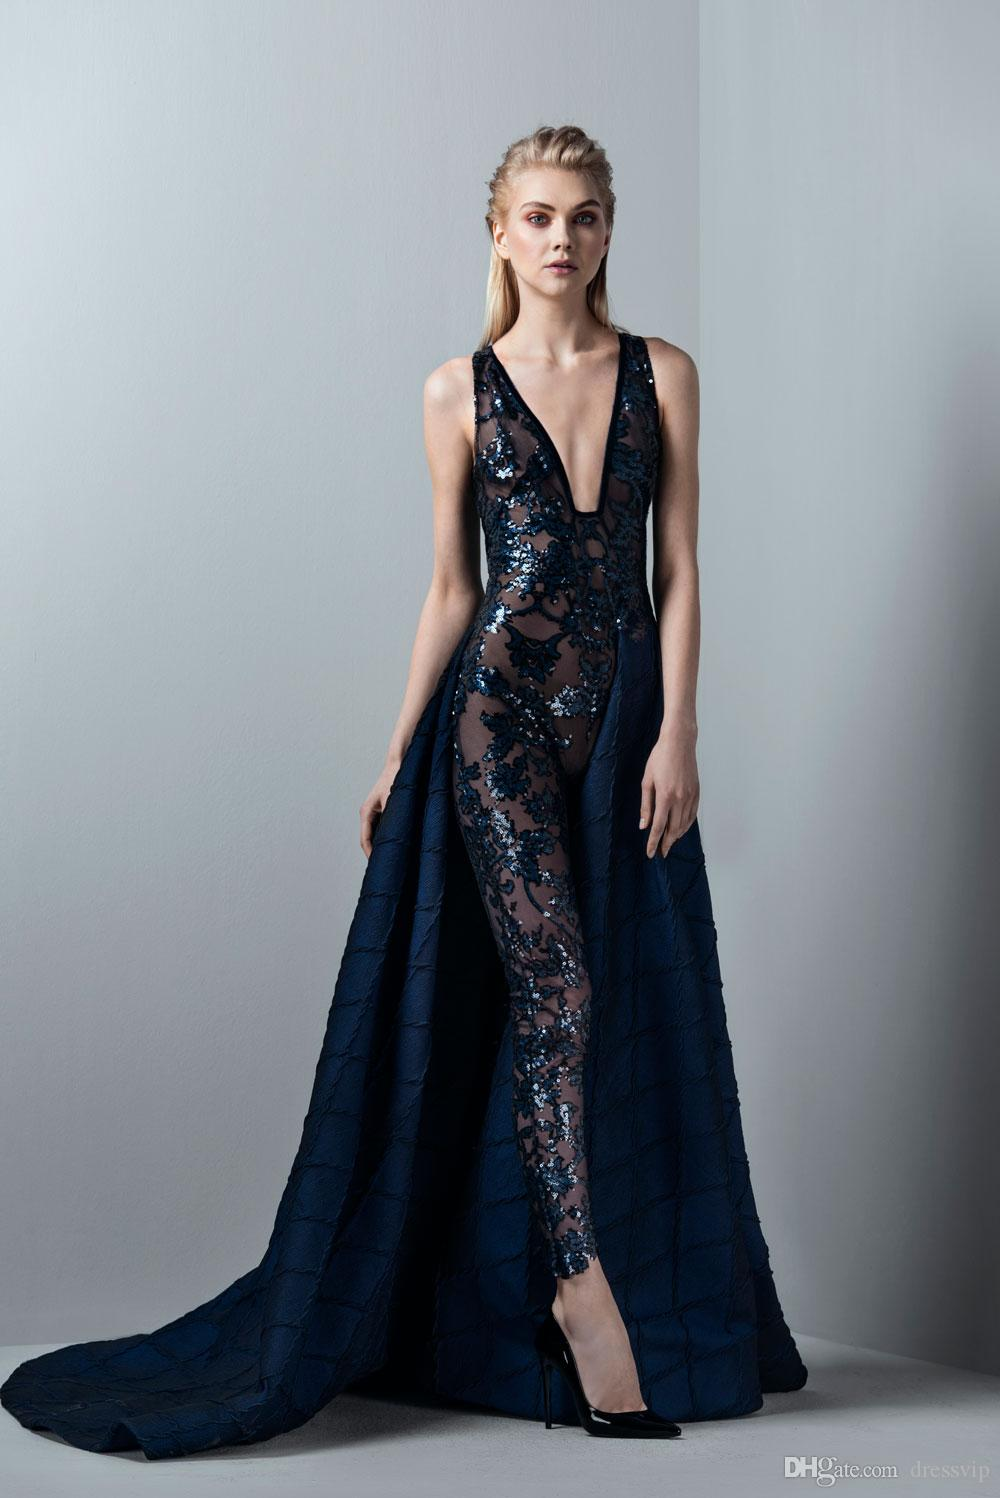 Ziad Nakad Black Prom Dresses A Line Luxury Feathers Off The Shoulder Lace  Appliqued Beads Quinceanera Dresses Evening Party Wear Formal c13cdf2222